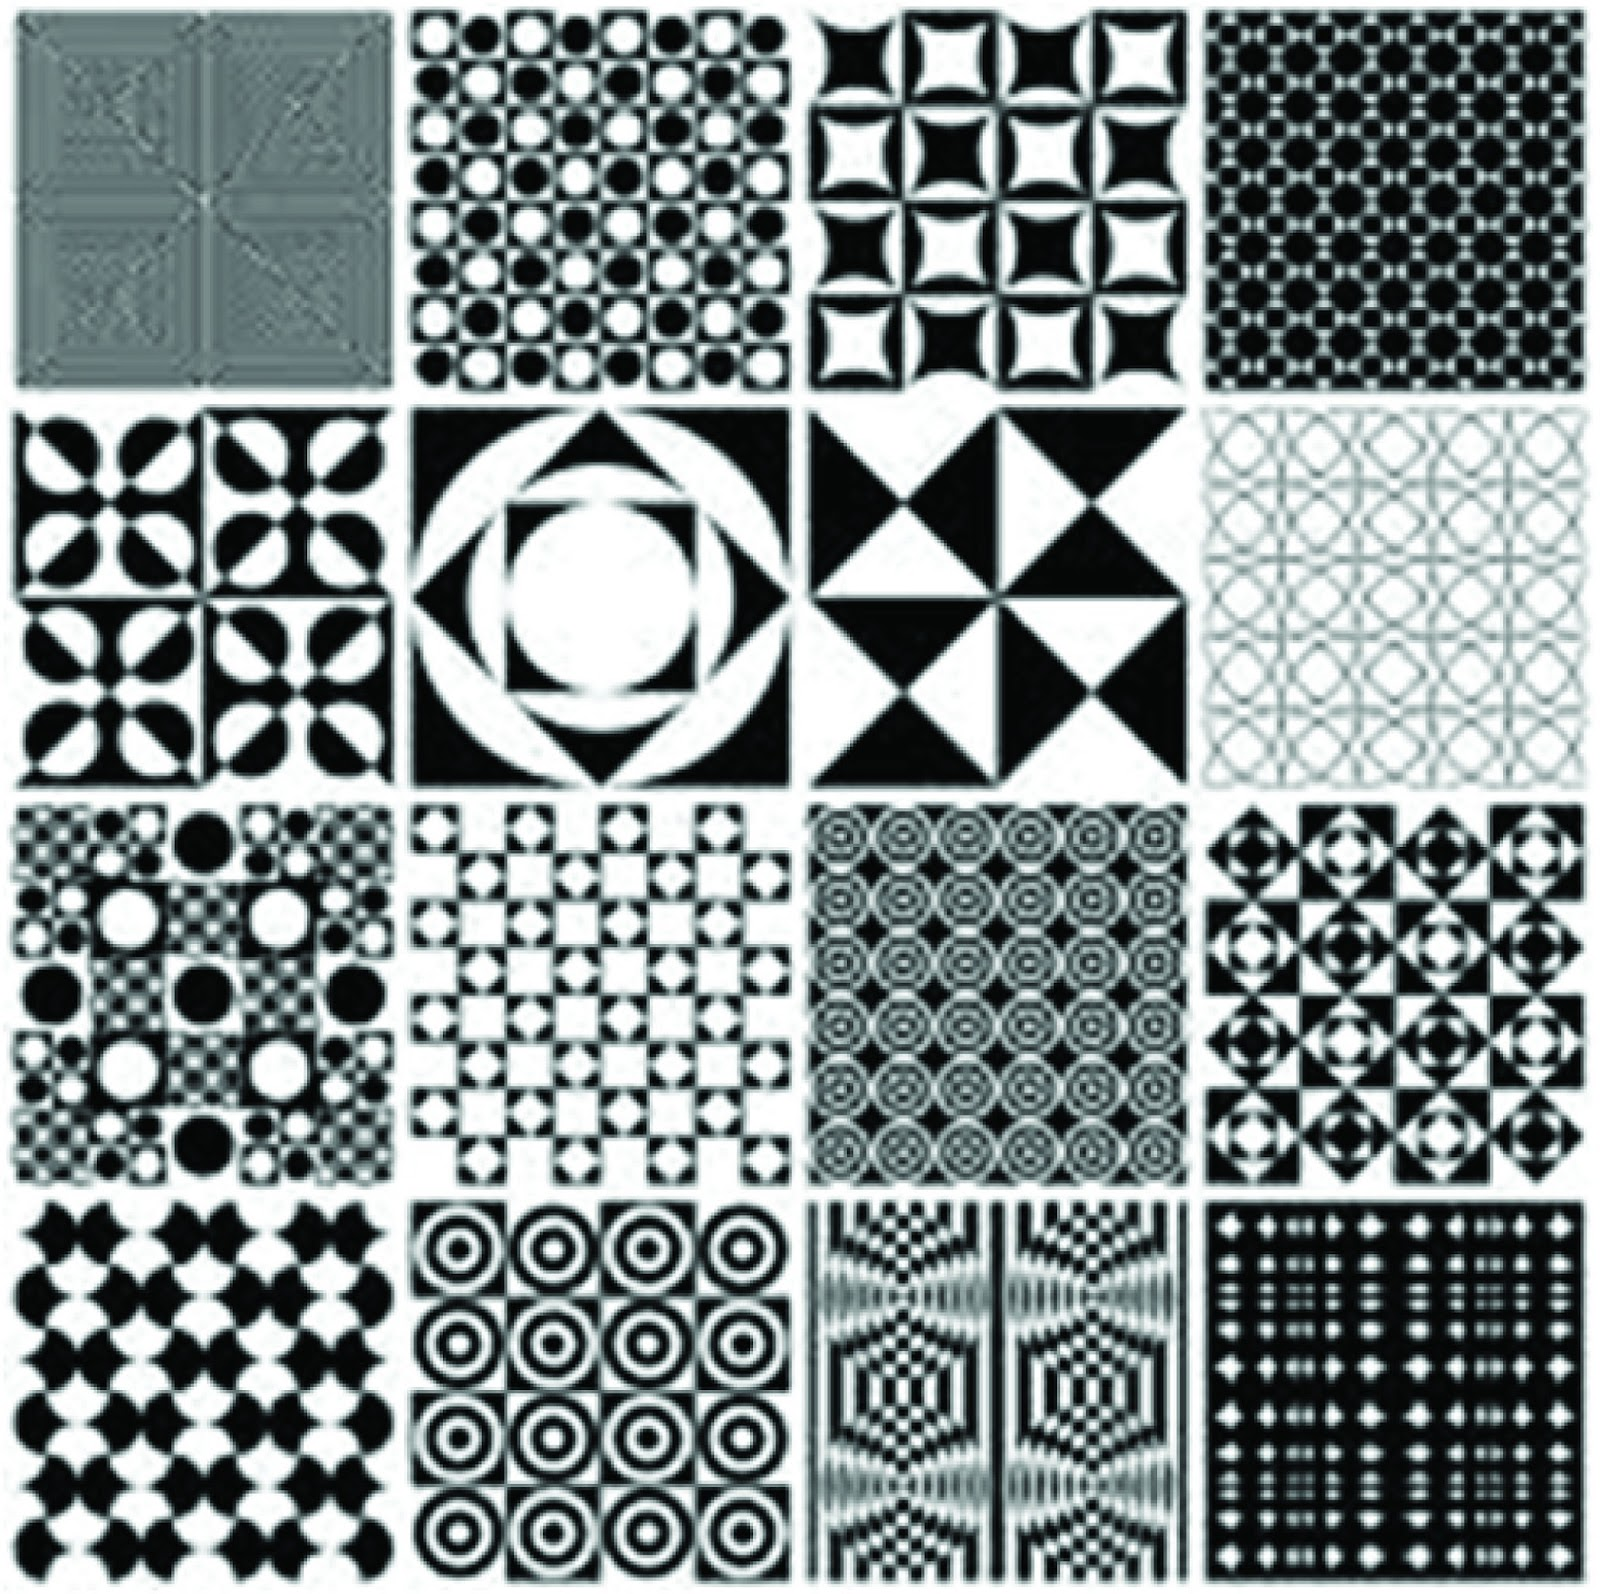 House Color Combination Textile Design Idea Different Type Of Textile Design Patterns